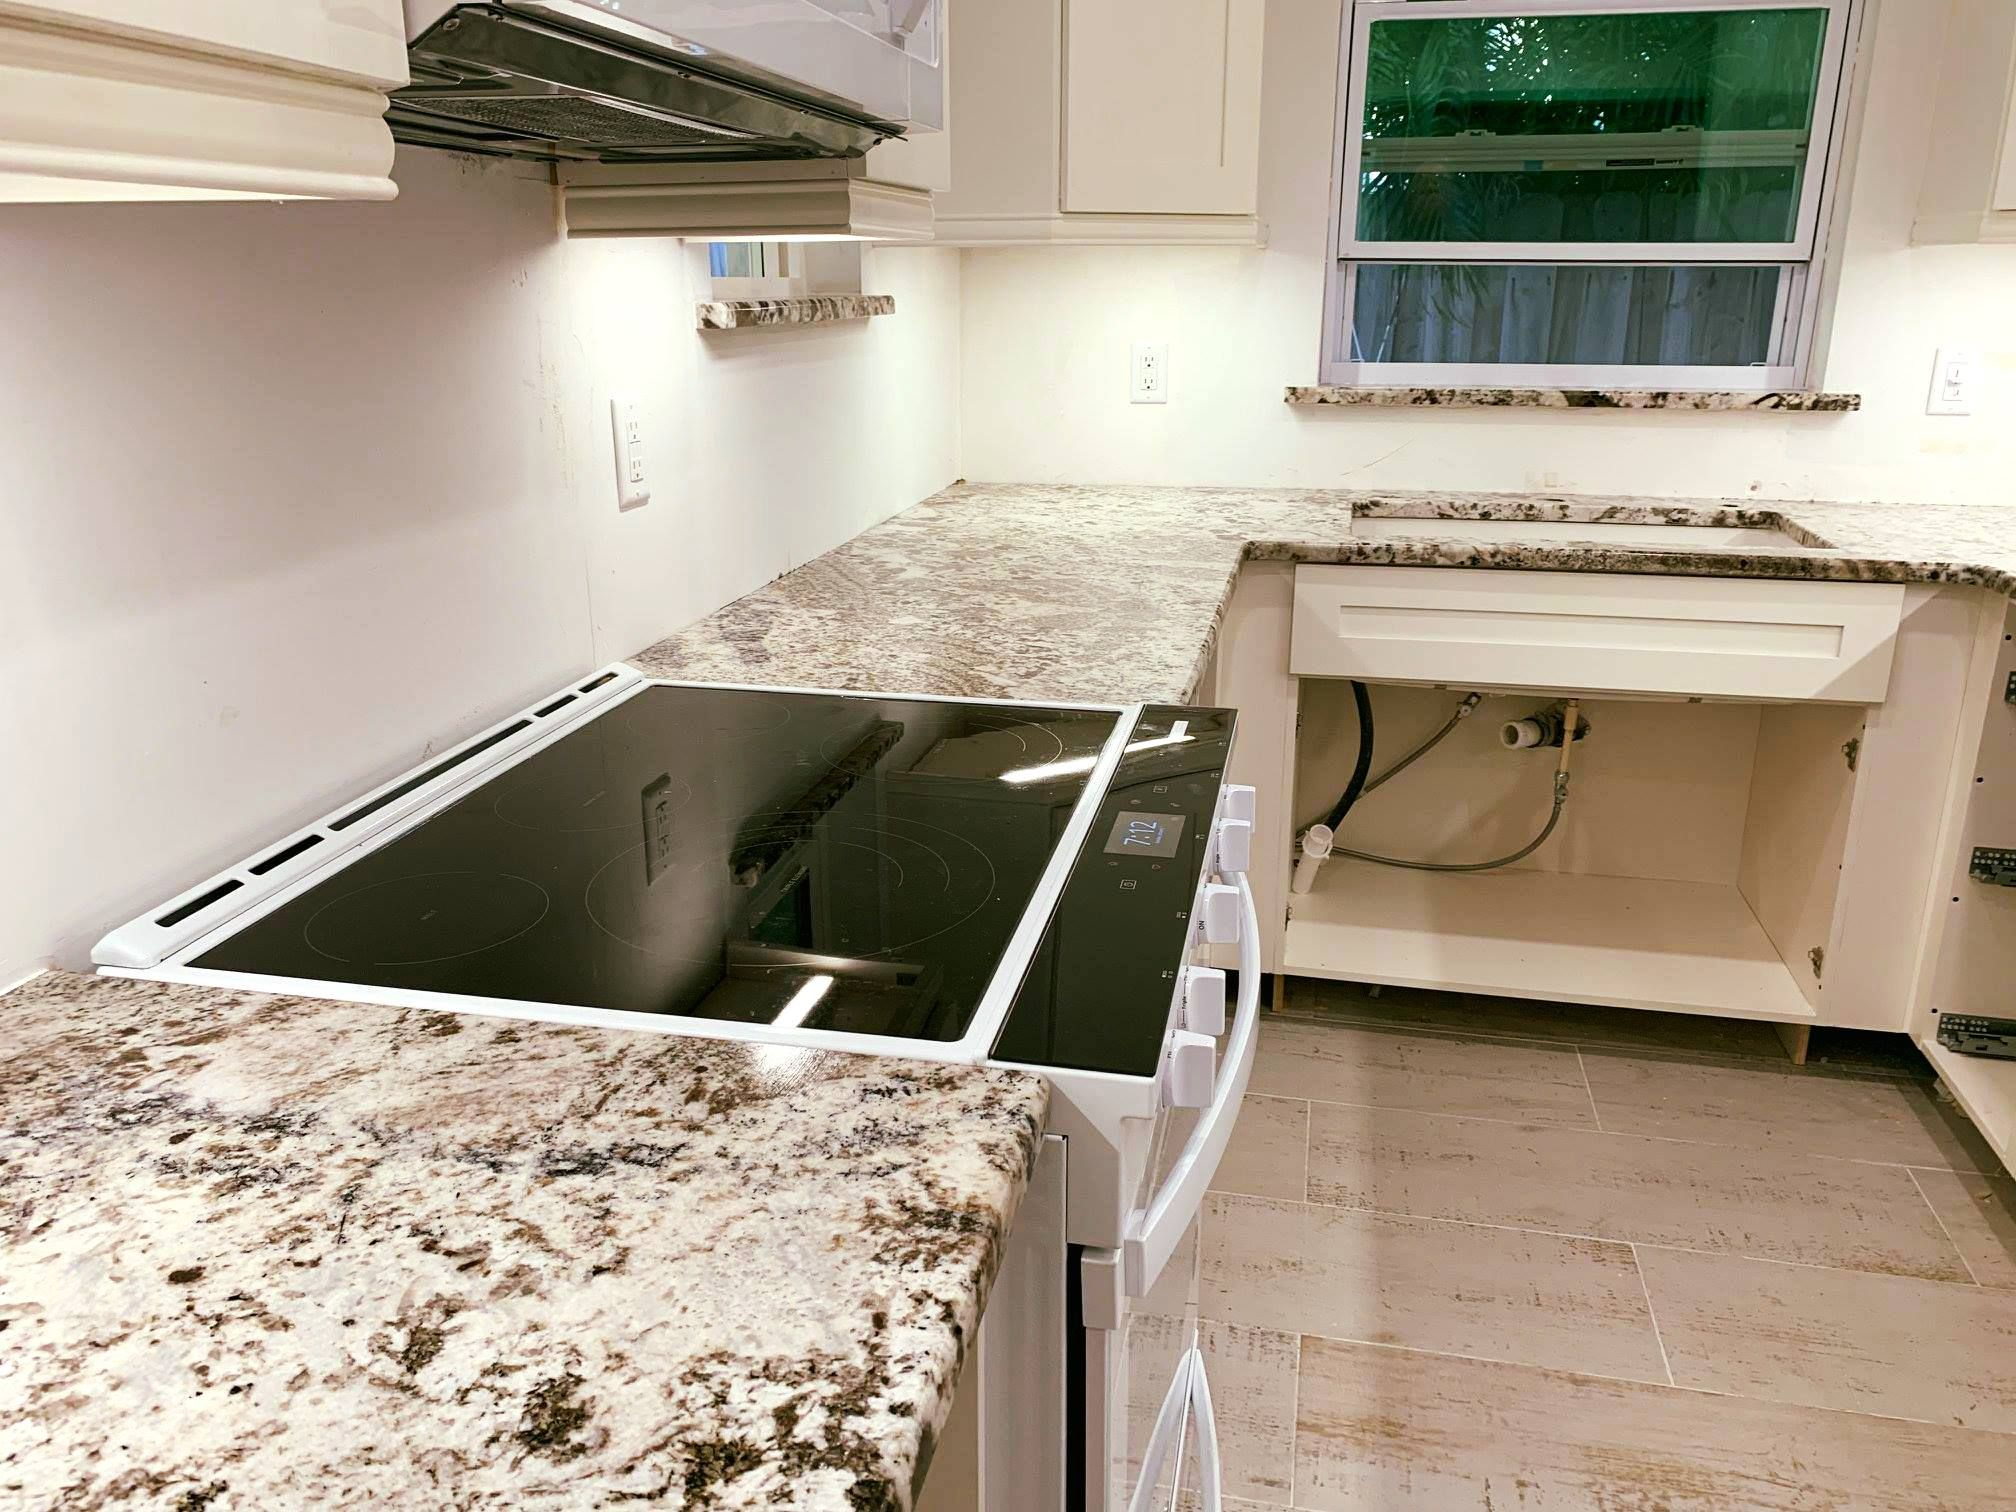 Amazing Custom Made Kitchen Countertops Made By Using Azul Nova